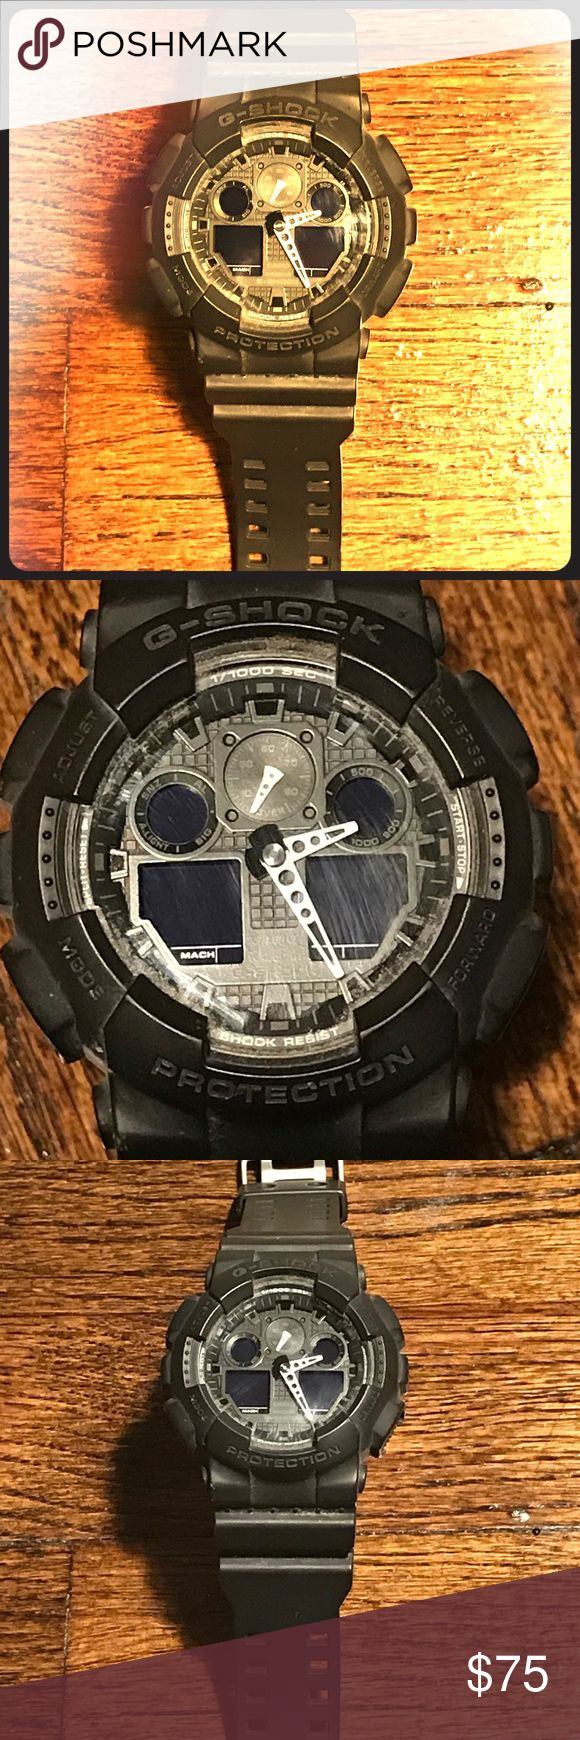 GSHOCK Watch - Black (Casio 5081 GA-100) A timeless fashion statement whether at the gym, on the job, or for the classic date night! Very comfortable and goes with everything. Amazing physical condition, needs a new battery as reflected by price! Accessories Watches